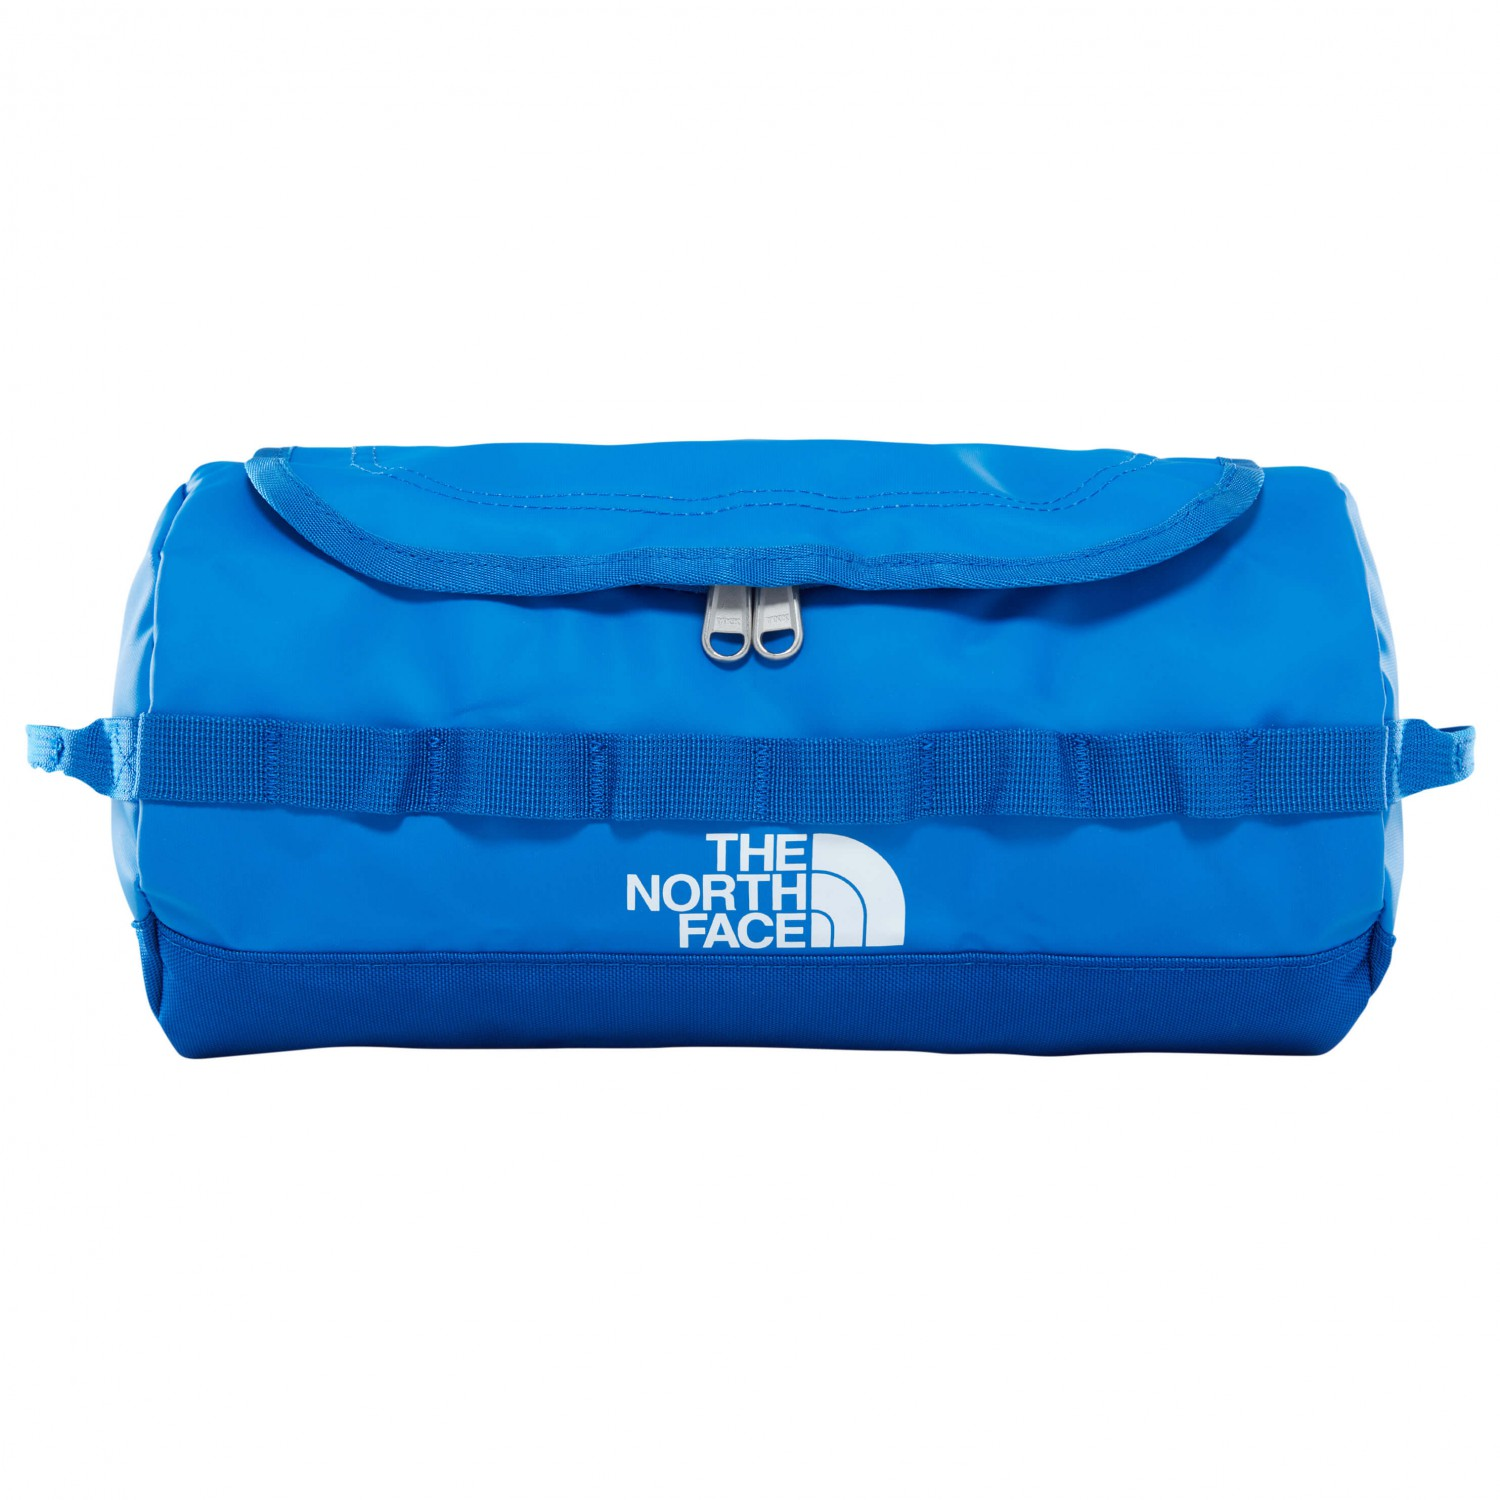 The North Face Base Camp Travel Canister Wash Bag